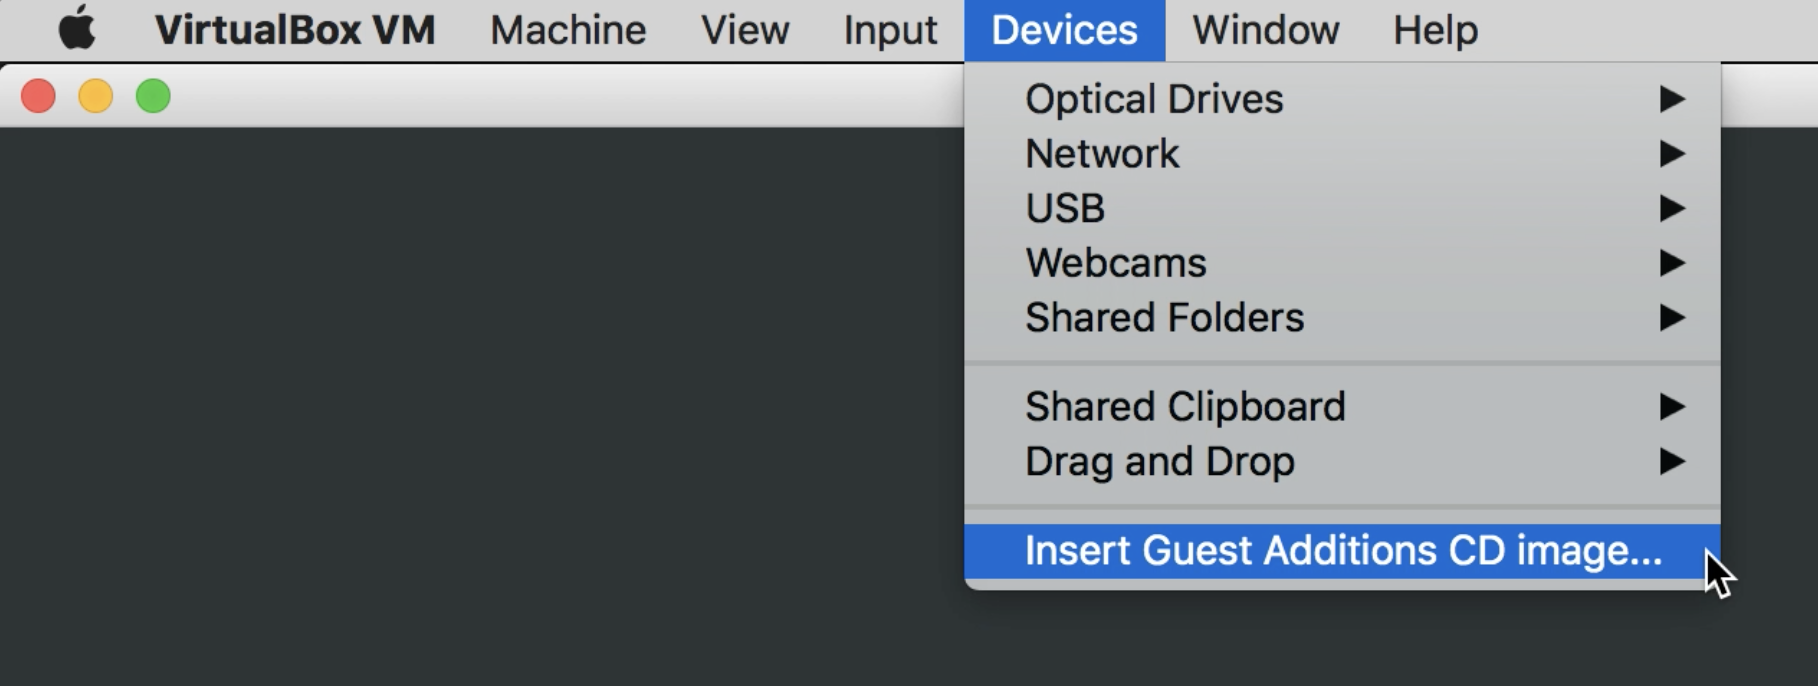 VirtualBox, inserting Guest Additions